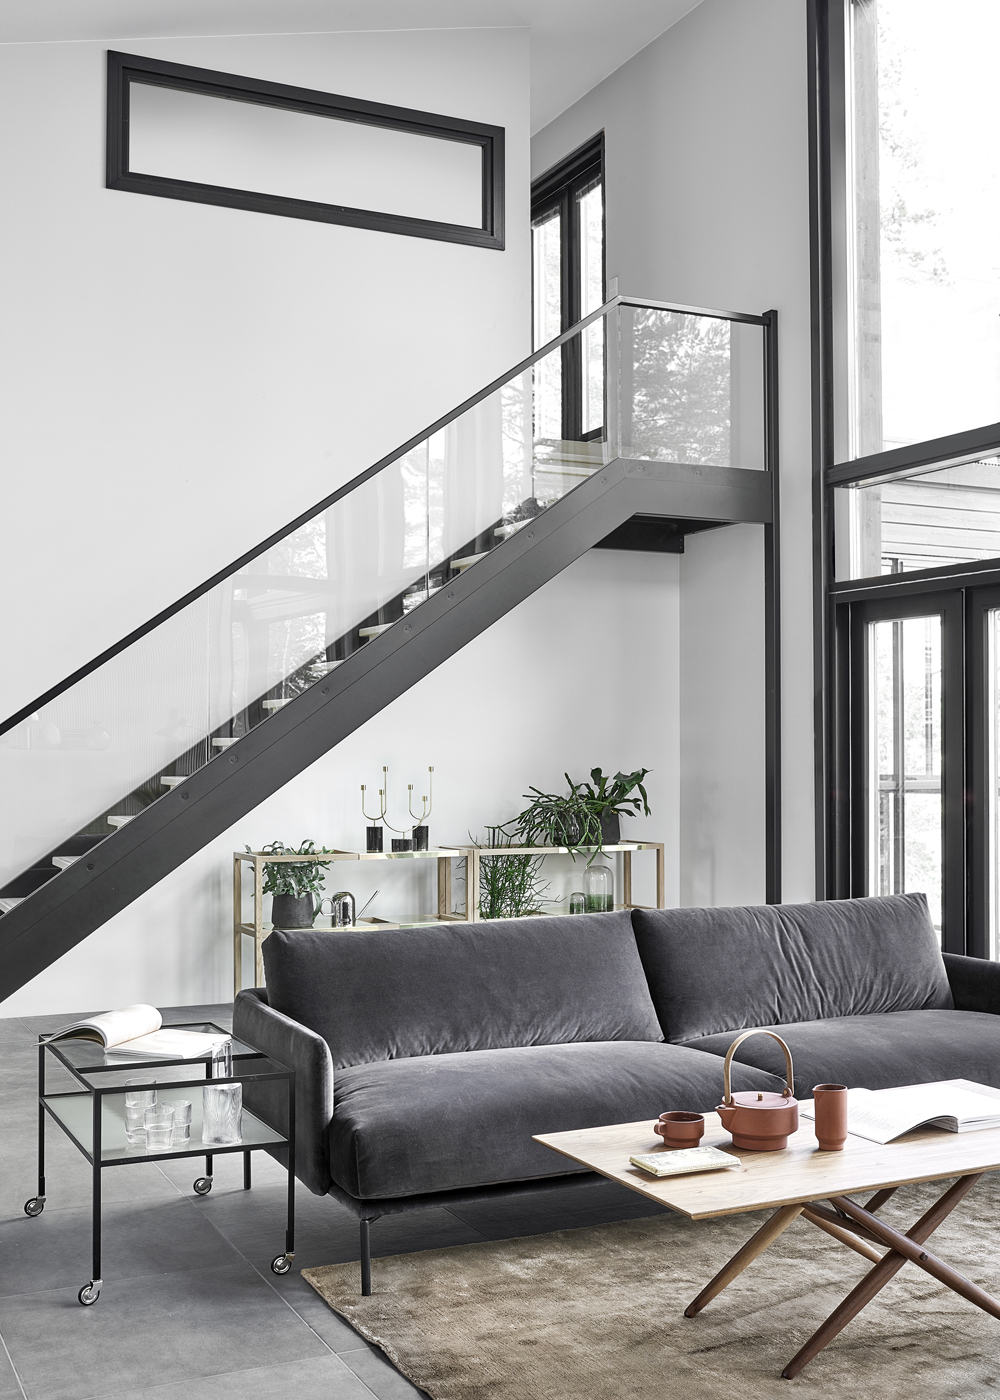 New home with a warm interior coco lapine designcoco - New home interior design ...